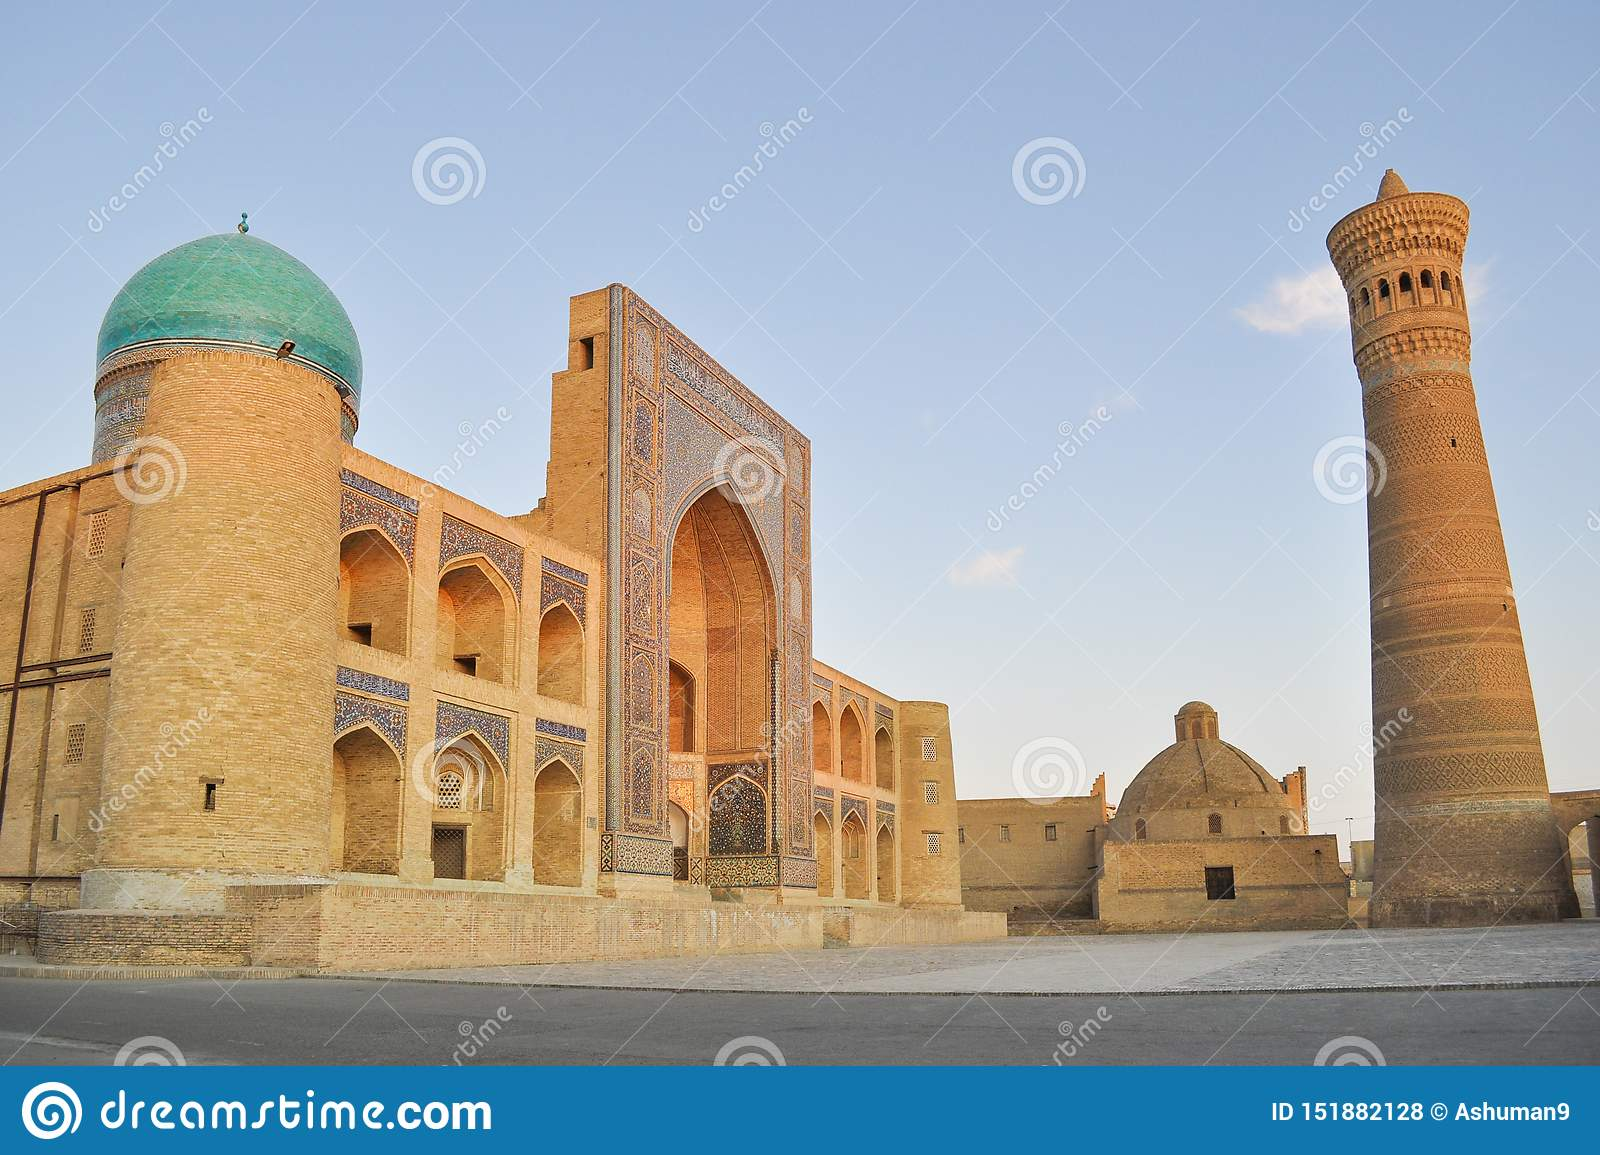 Poi Kalyan Mosque is located in the historical part of Bukhara.